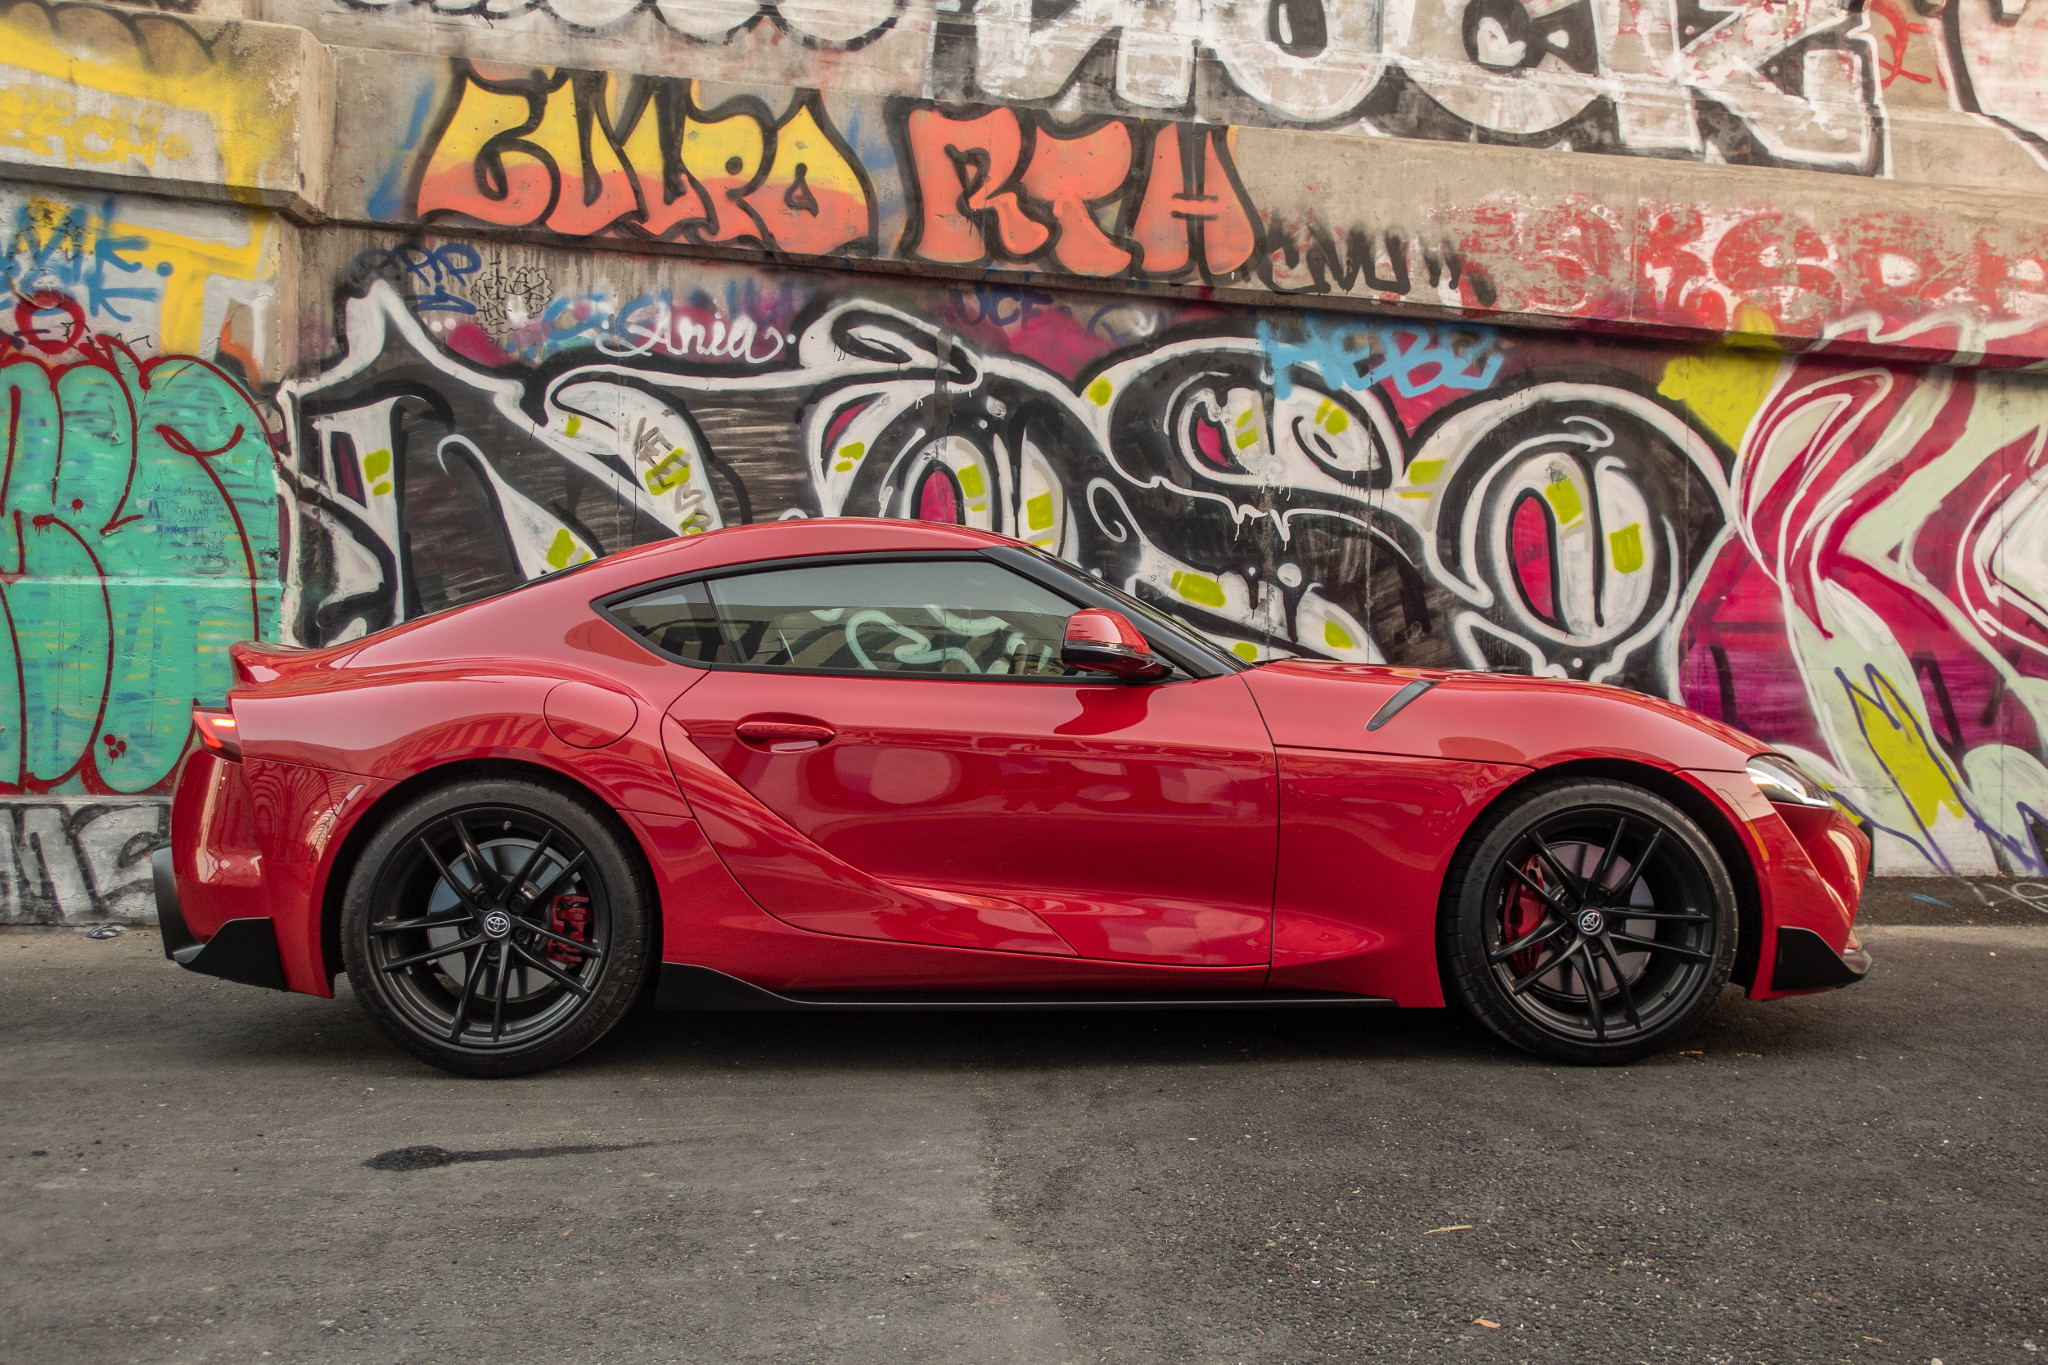 Top 5 Reviews and Videos of the Week: Supra Swoops In, Armada Invades